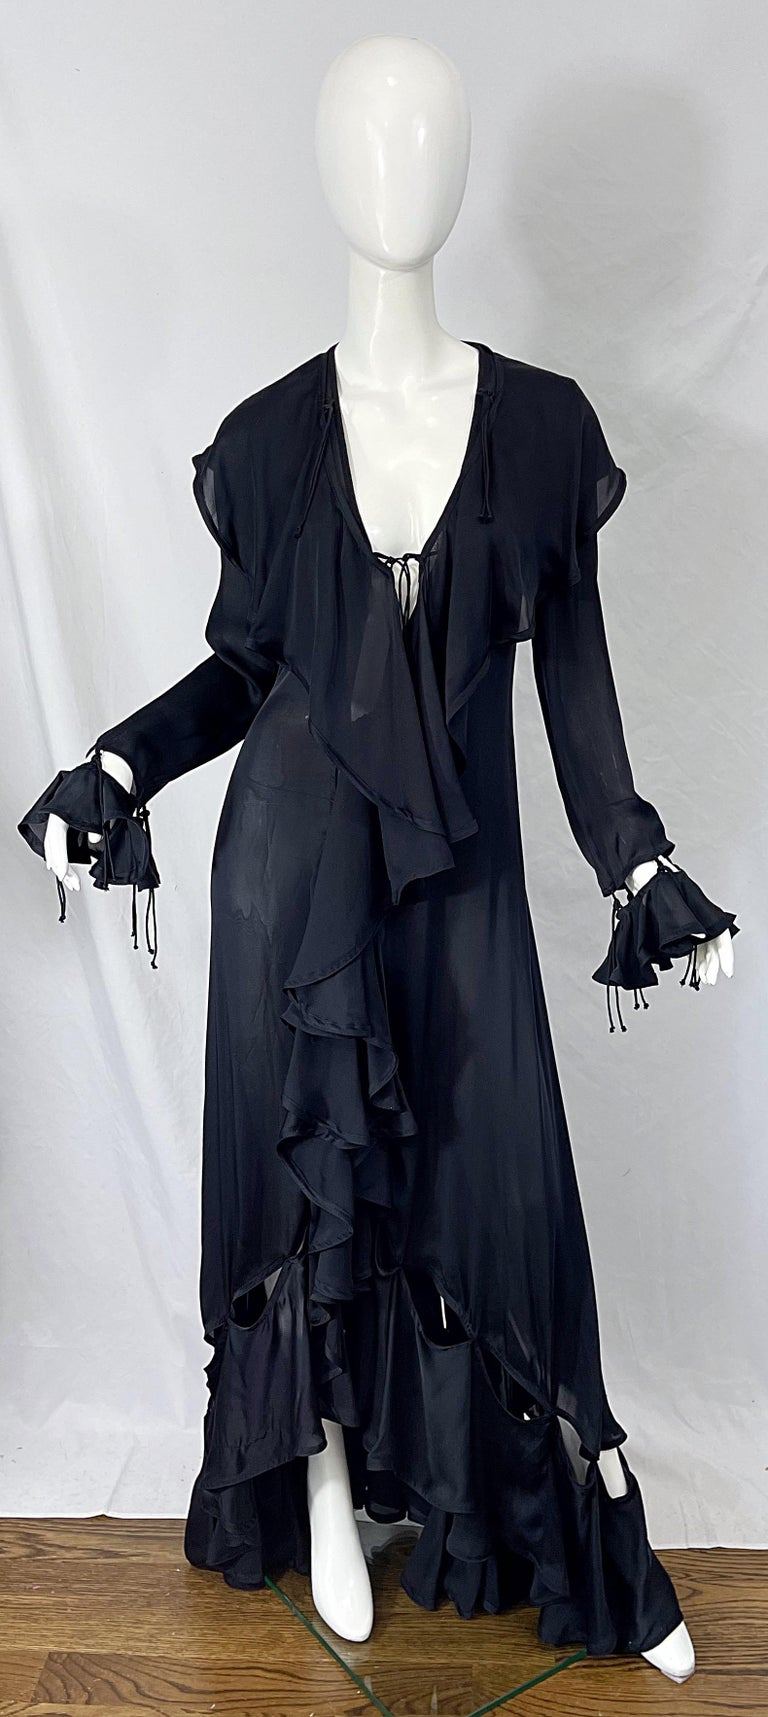 Women's Yves Saint Laurent by Tom Ford Fall 2003 Runway Black Silk Chiffon Gown Size 38 For Sale